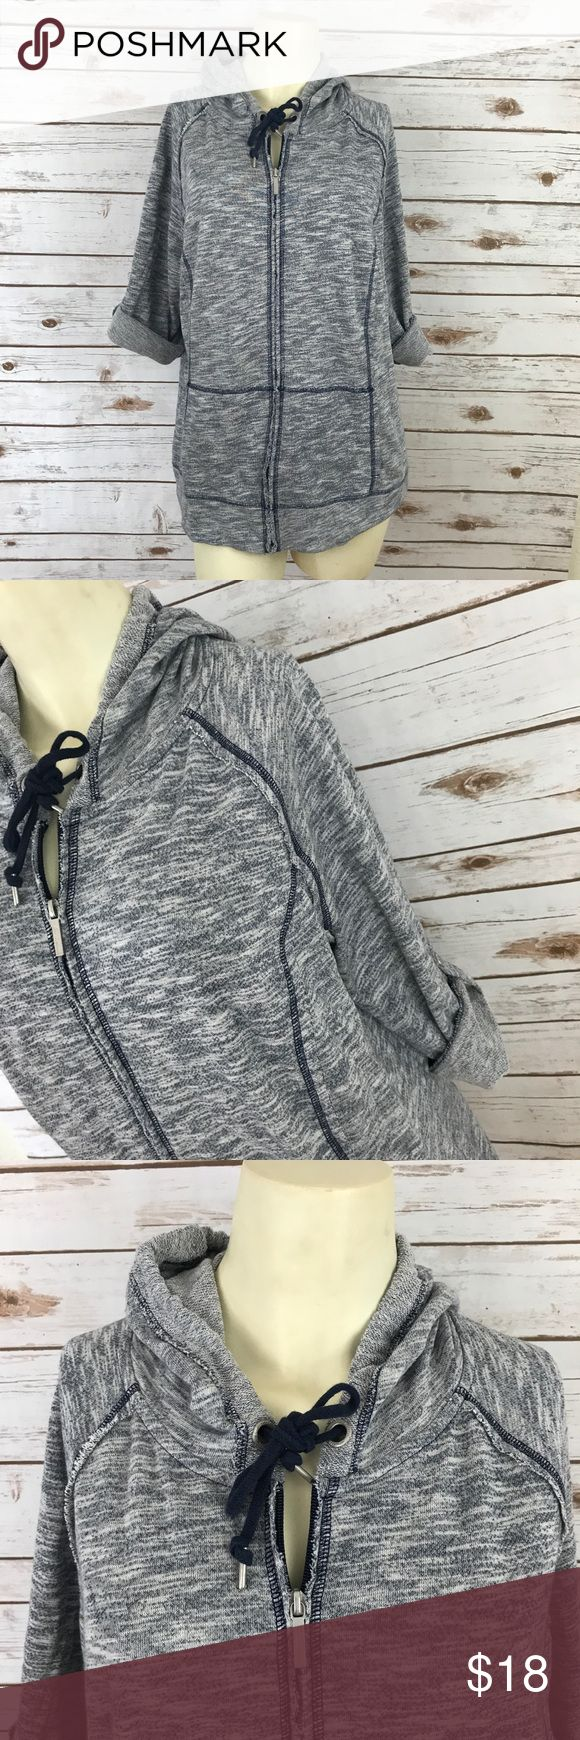 Lane Bryant Active Wear zip up hoodie plus 14/16 Plus size hoodie full zip made by Lane Bryant in excellent condition. Sleeves have the option for full length or 3/4. Lane Bryant Tops Sweatshirts & Hoodies